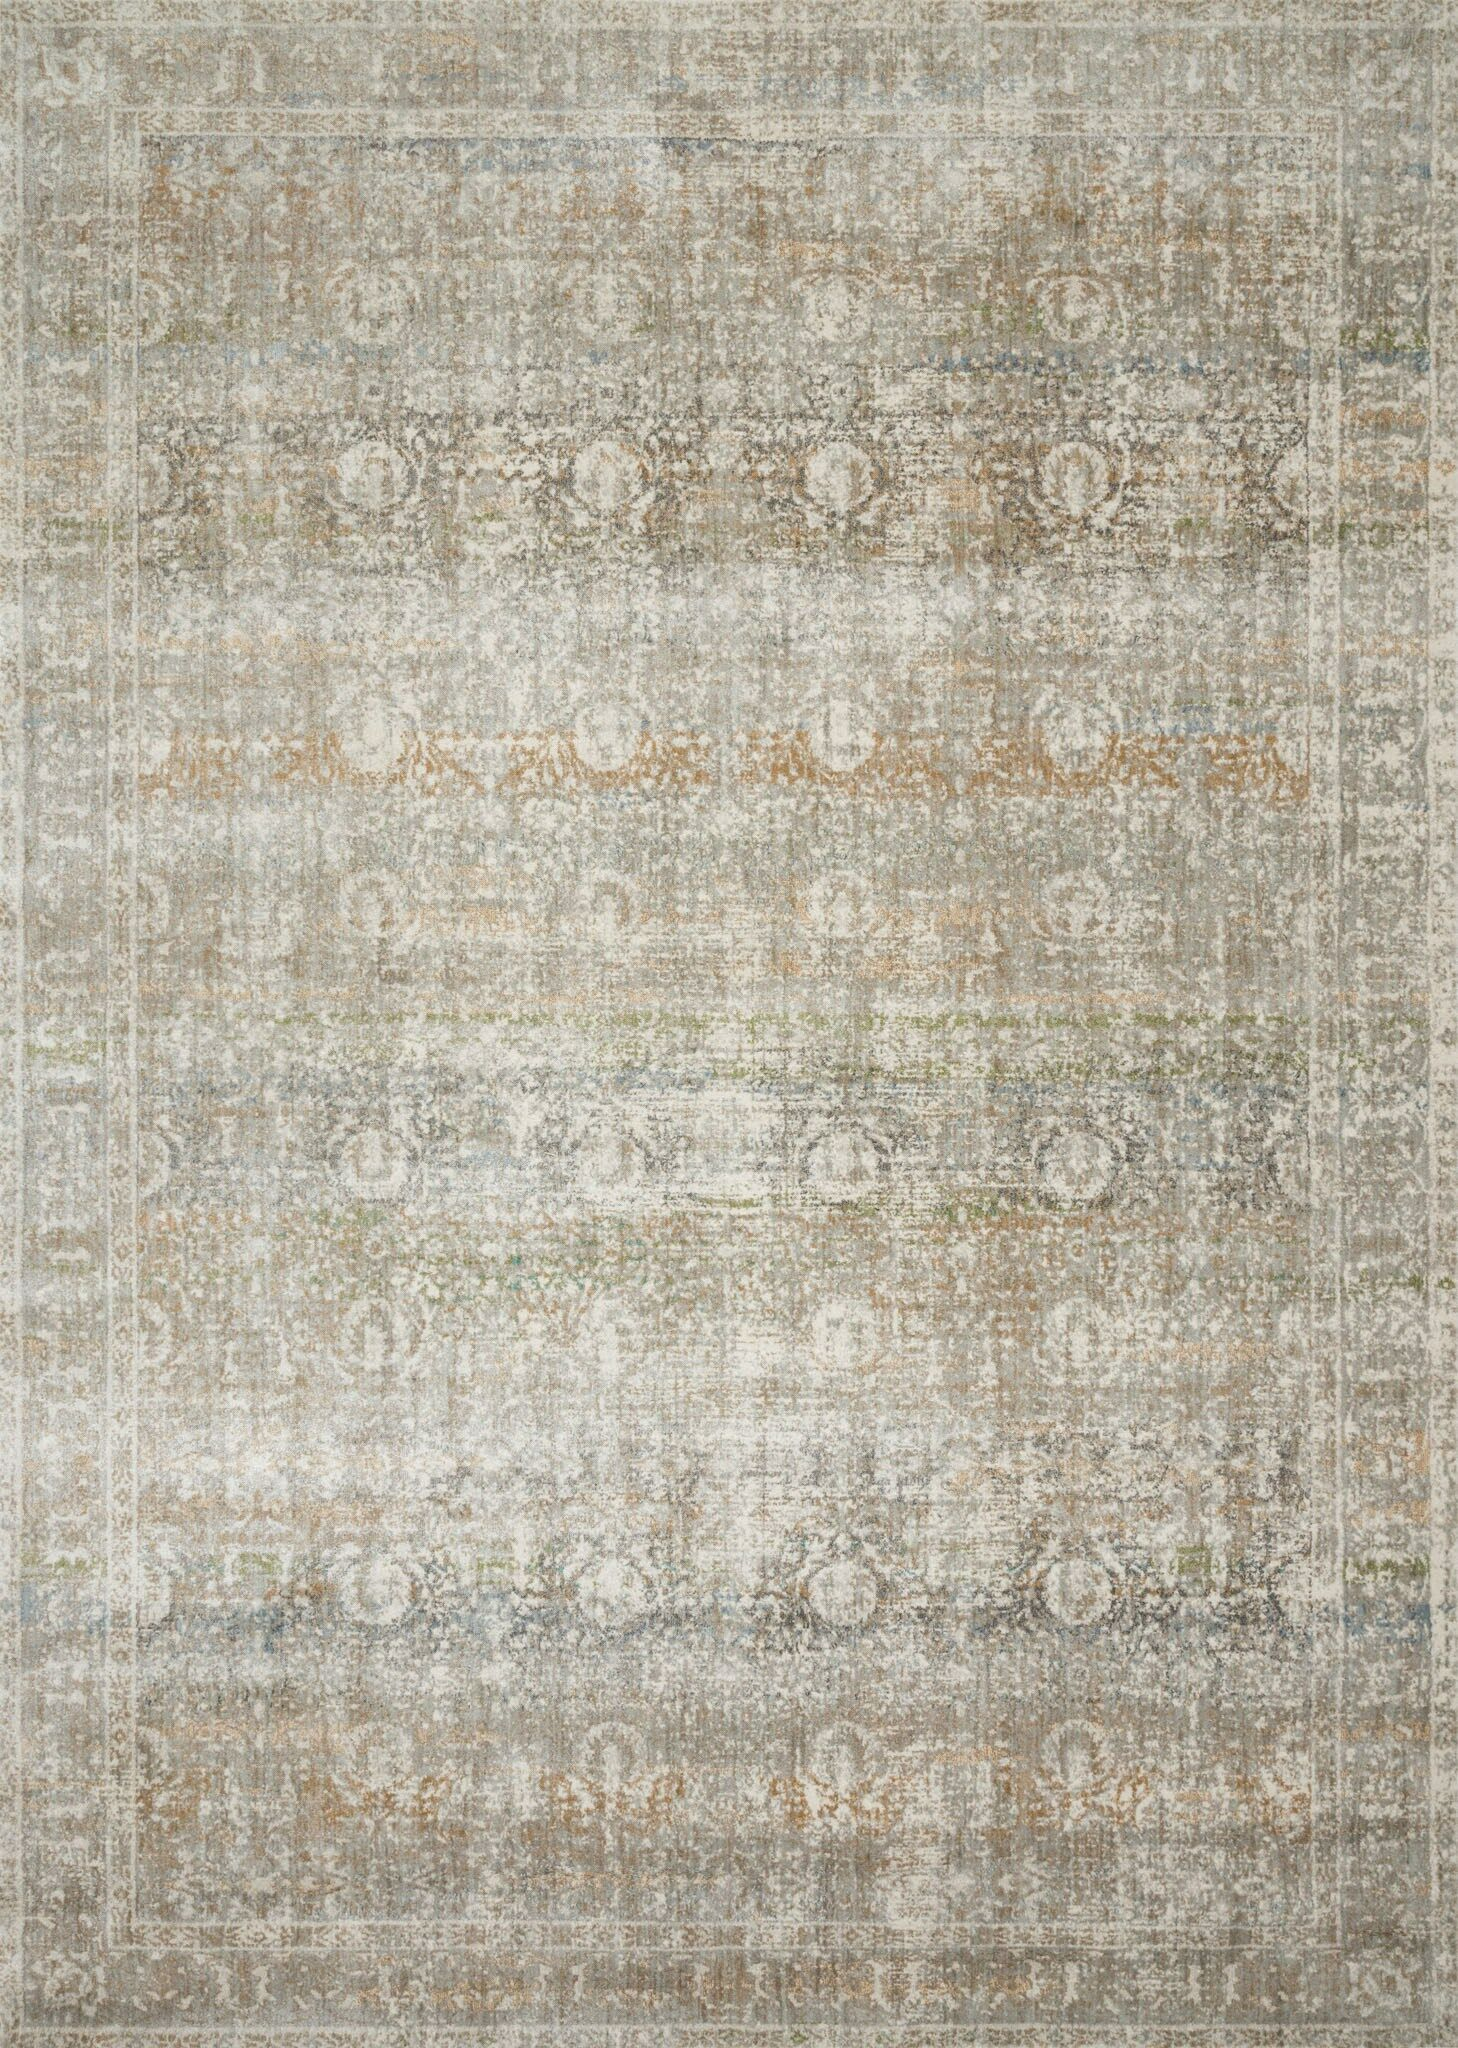 Steward Gray Area Rug Rug Size: Runner 2'7